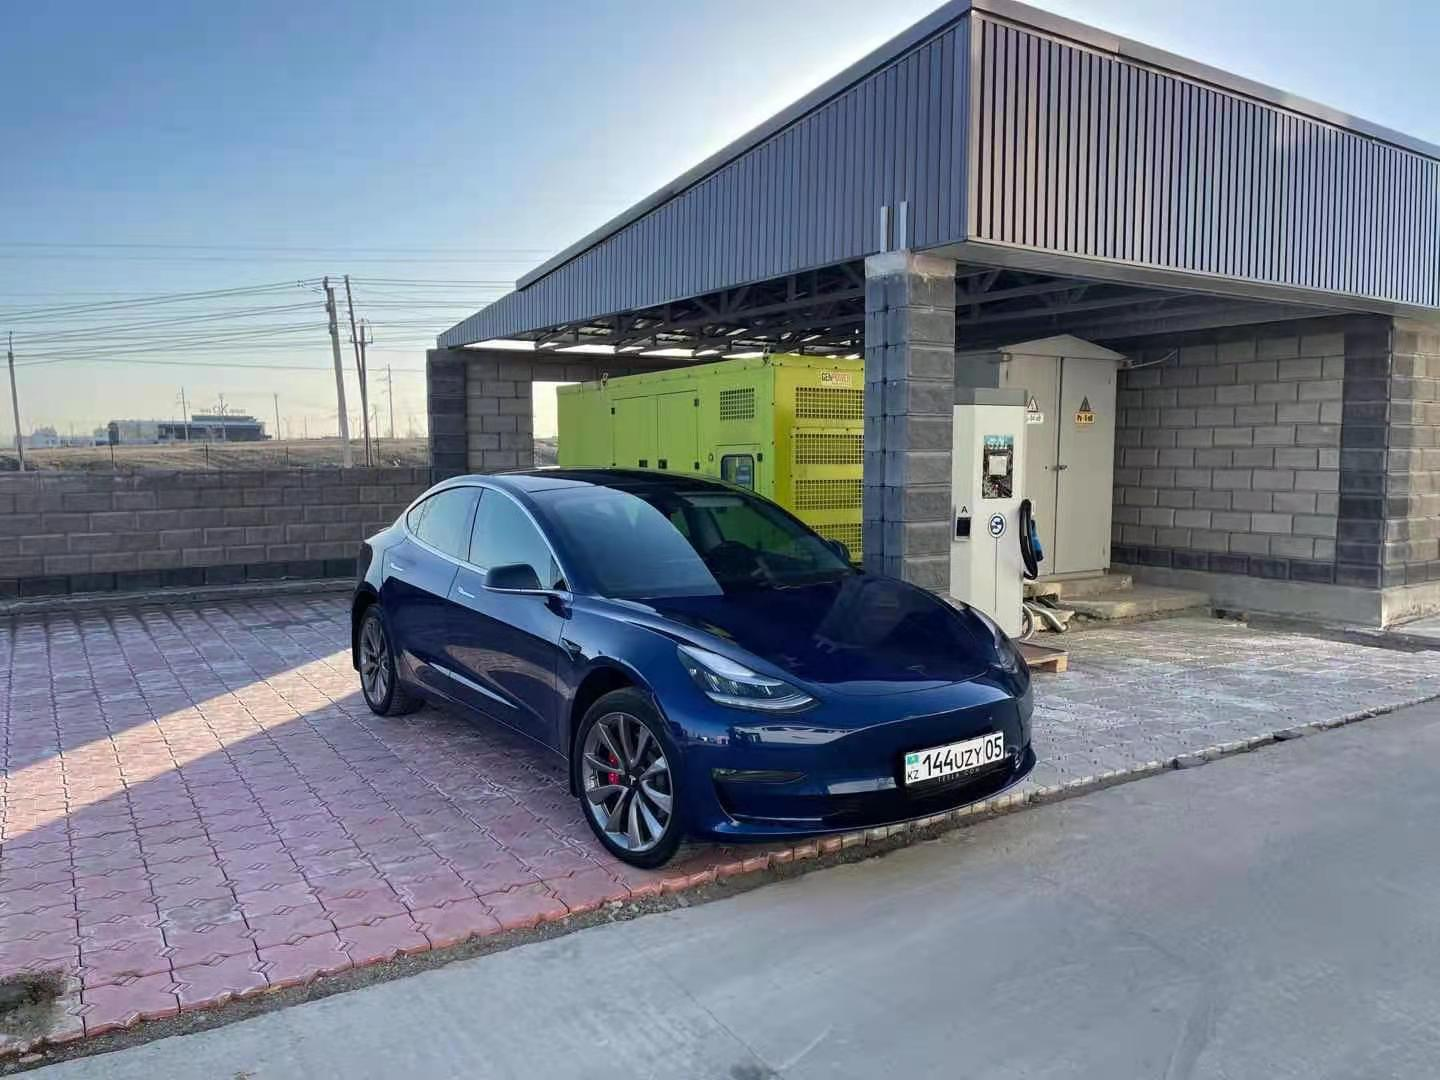 Why is there still a lot of resistance to the entry of new energy vehicle home use chargers into the community?